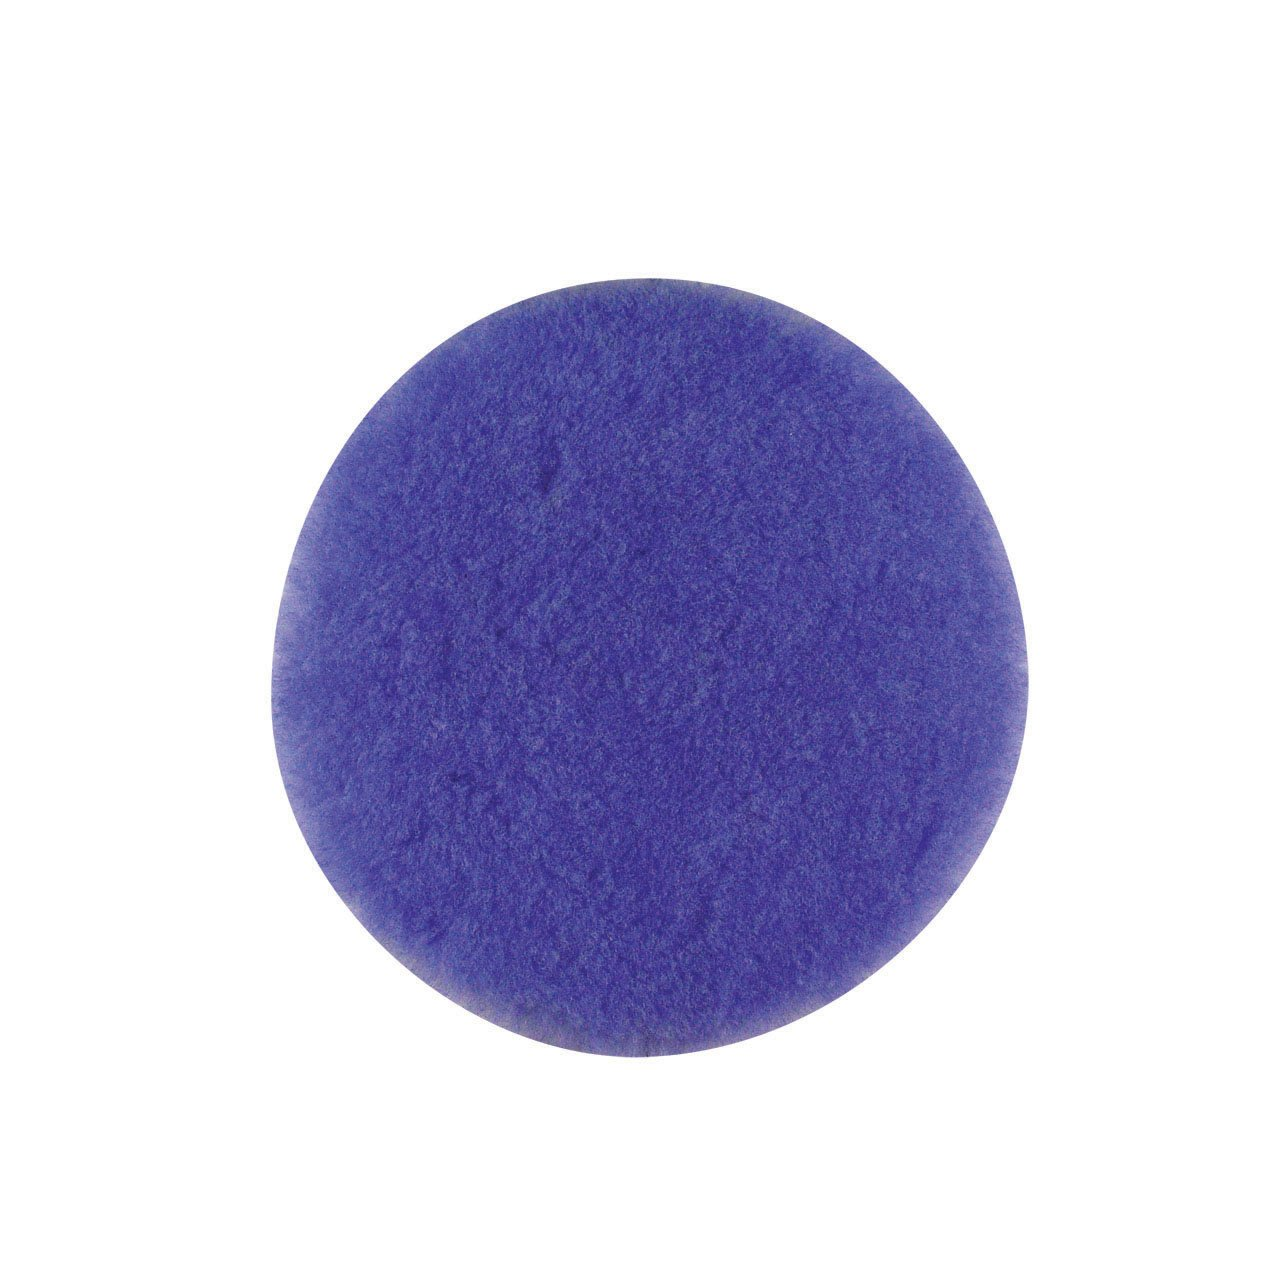 Foamed Wool Buffing Pad